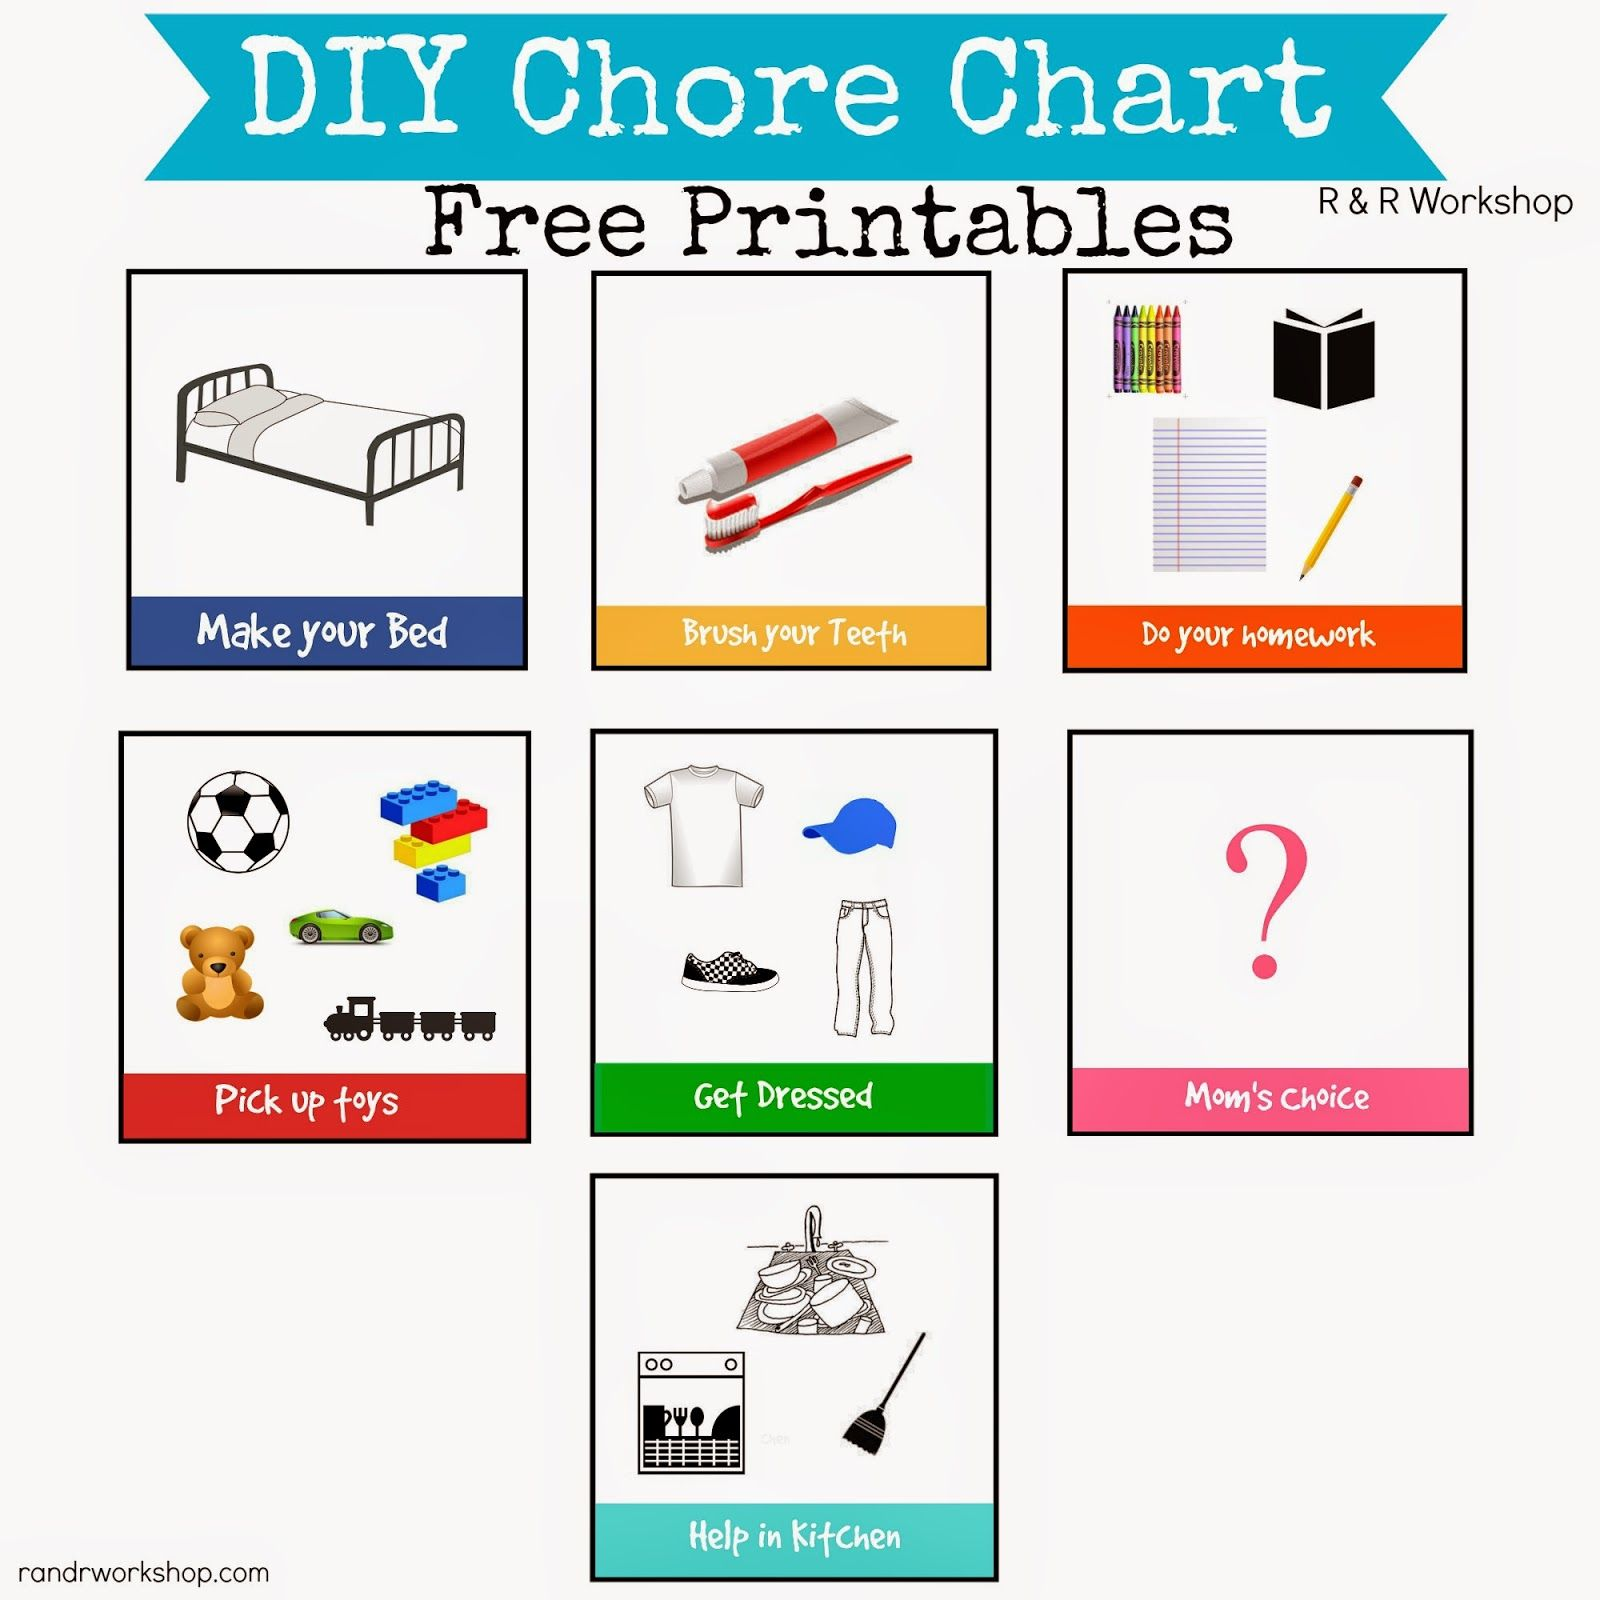 Colored Chore Chart For Kids Free Printables  Free Printables